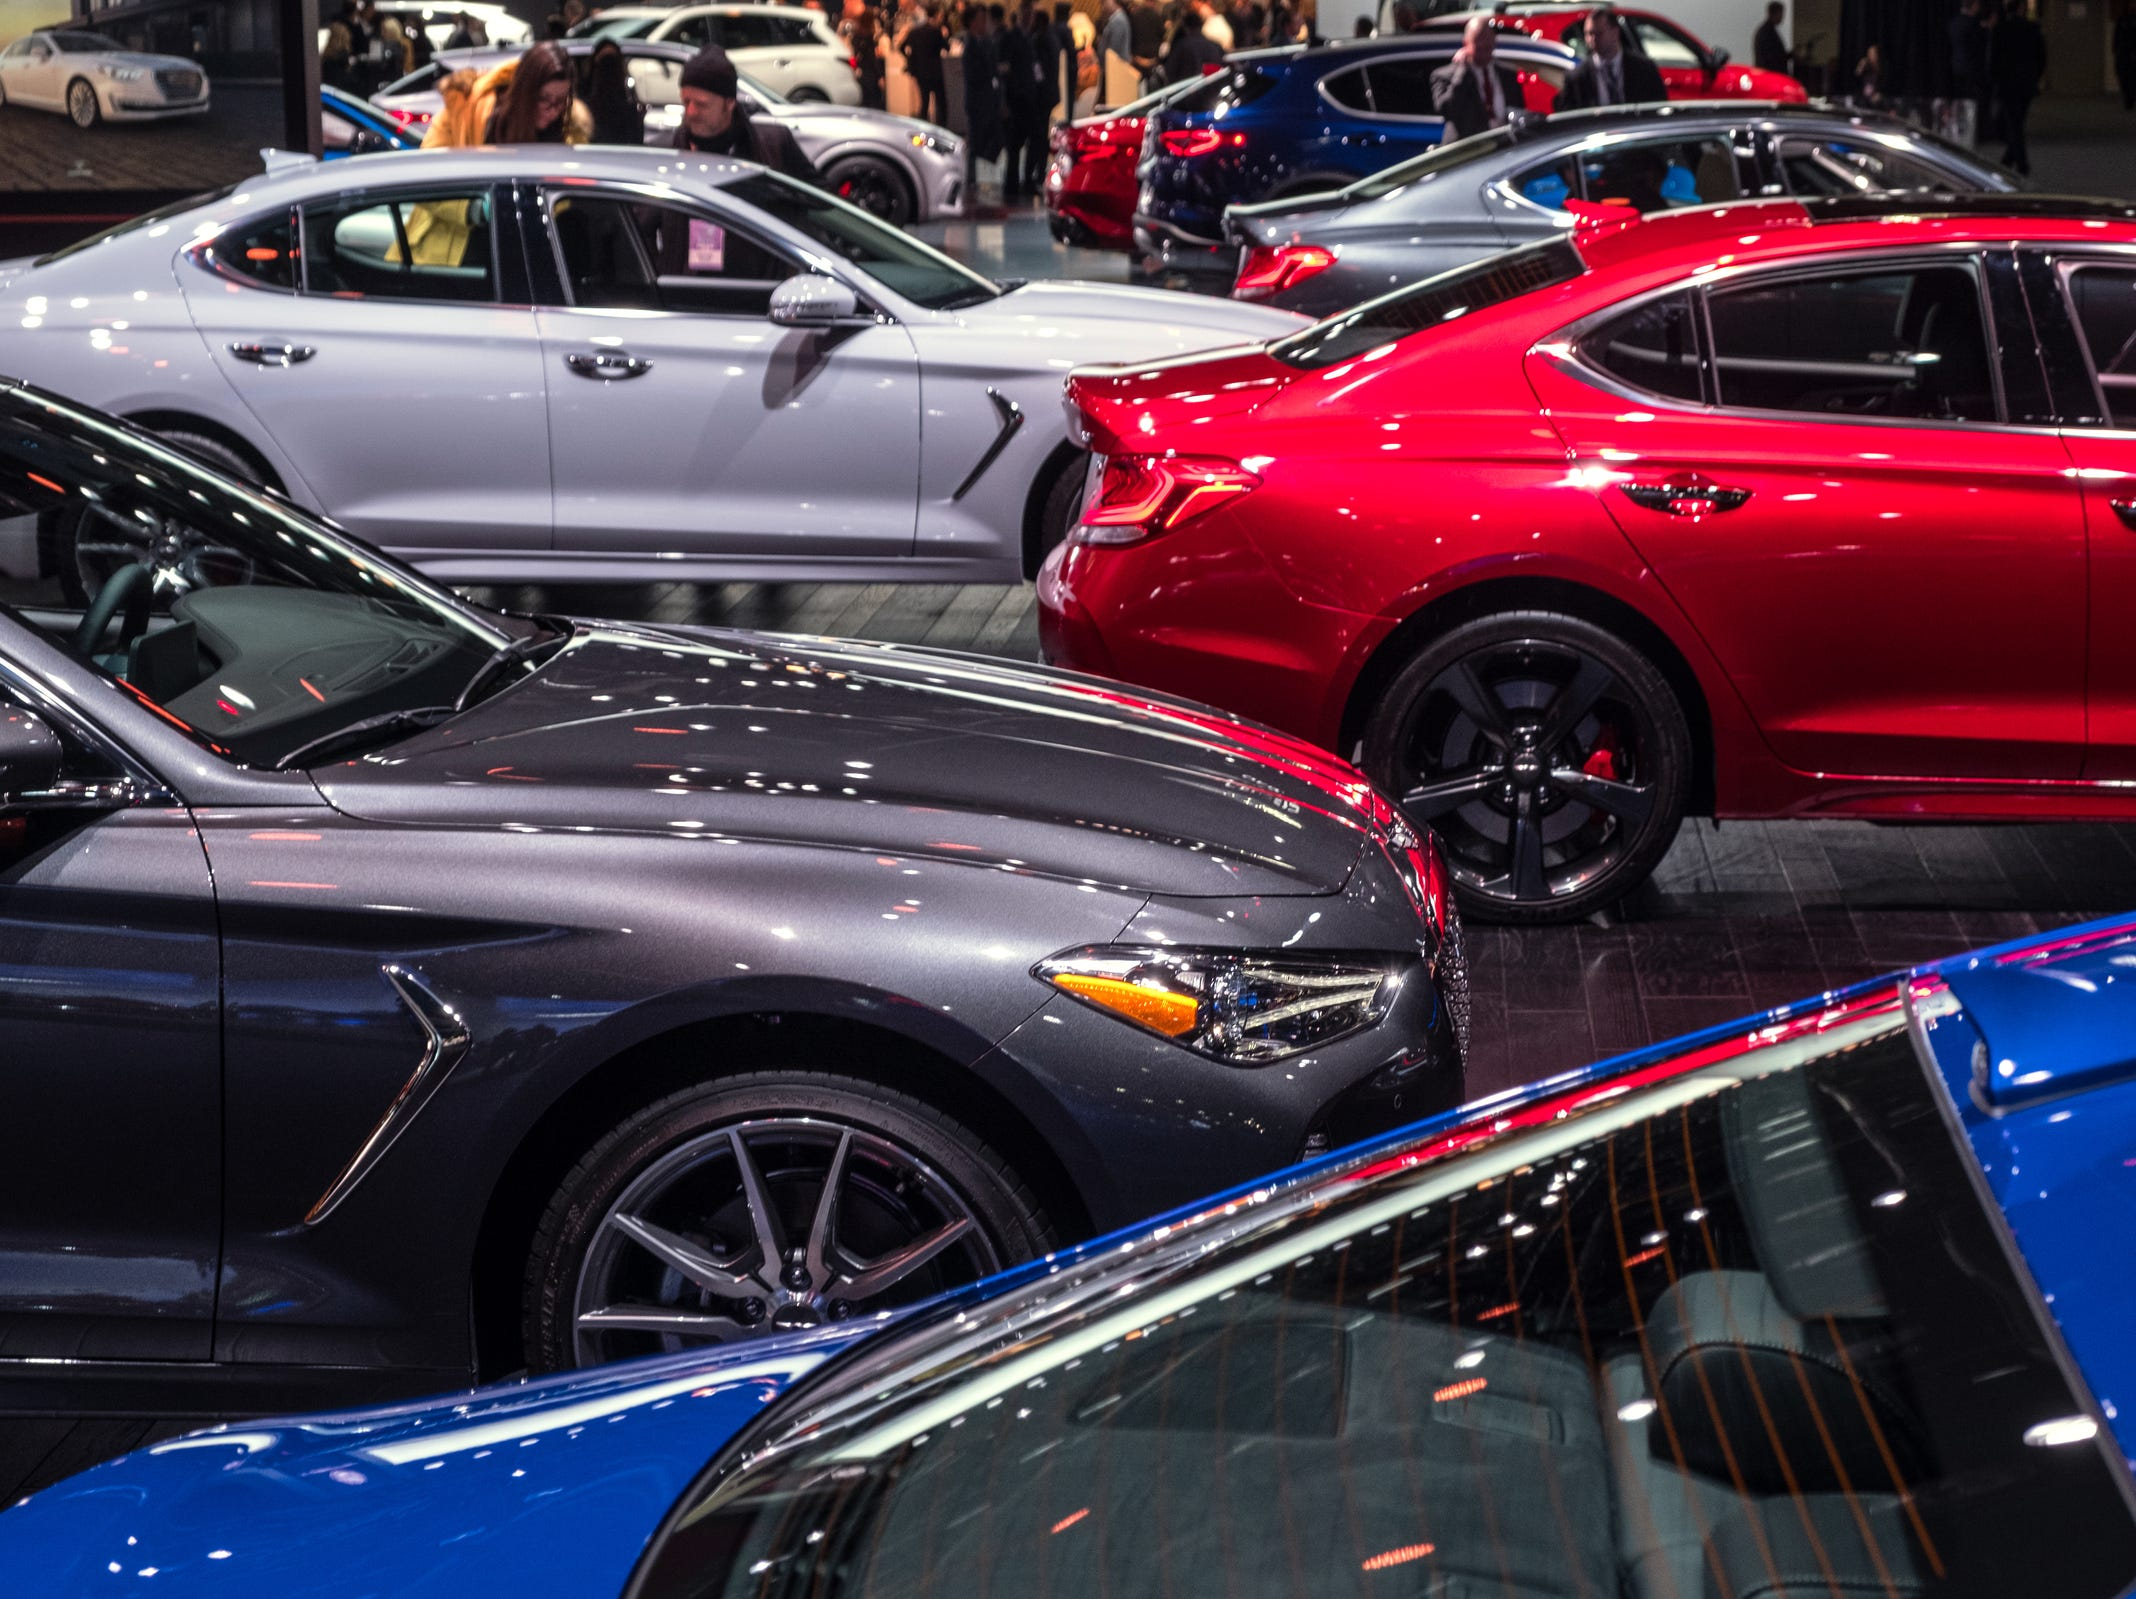 A view of the Genesis section on the show floor is seen during the 2019 North American International Auto Show held at Cobo Center in downtown Detroit on Monday, Jan. 14, 2019.